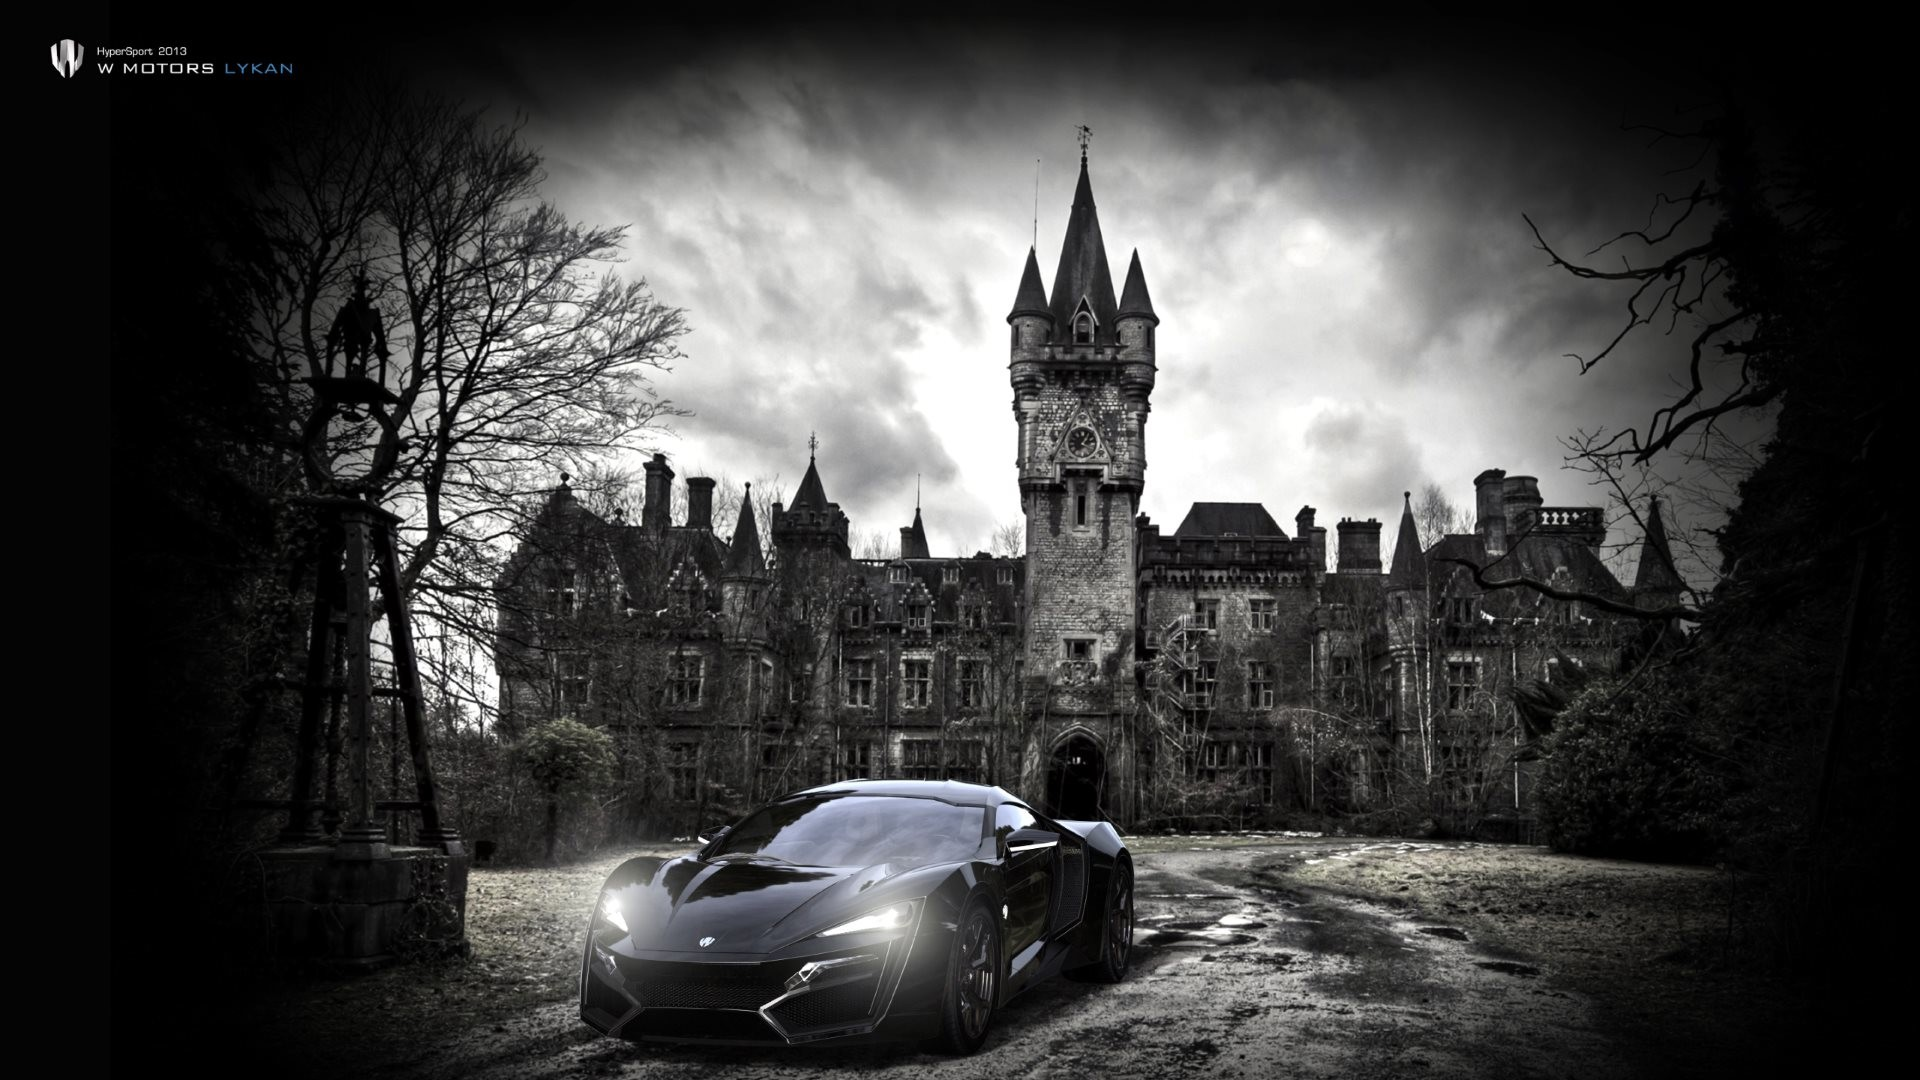 Lykan Hypersport Car looks insane as wallpaper on any HD and Wide screen